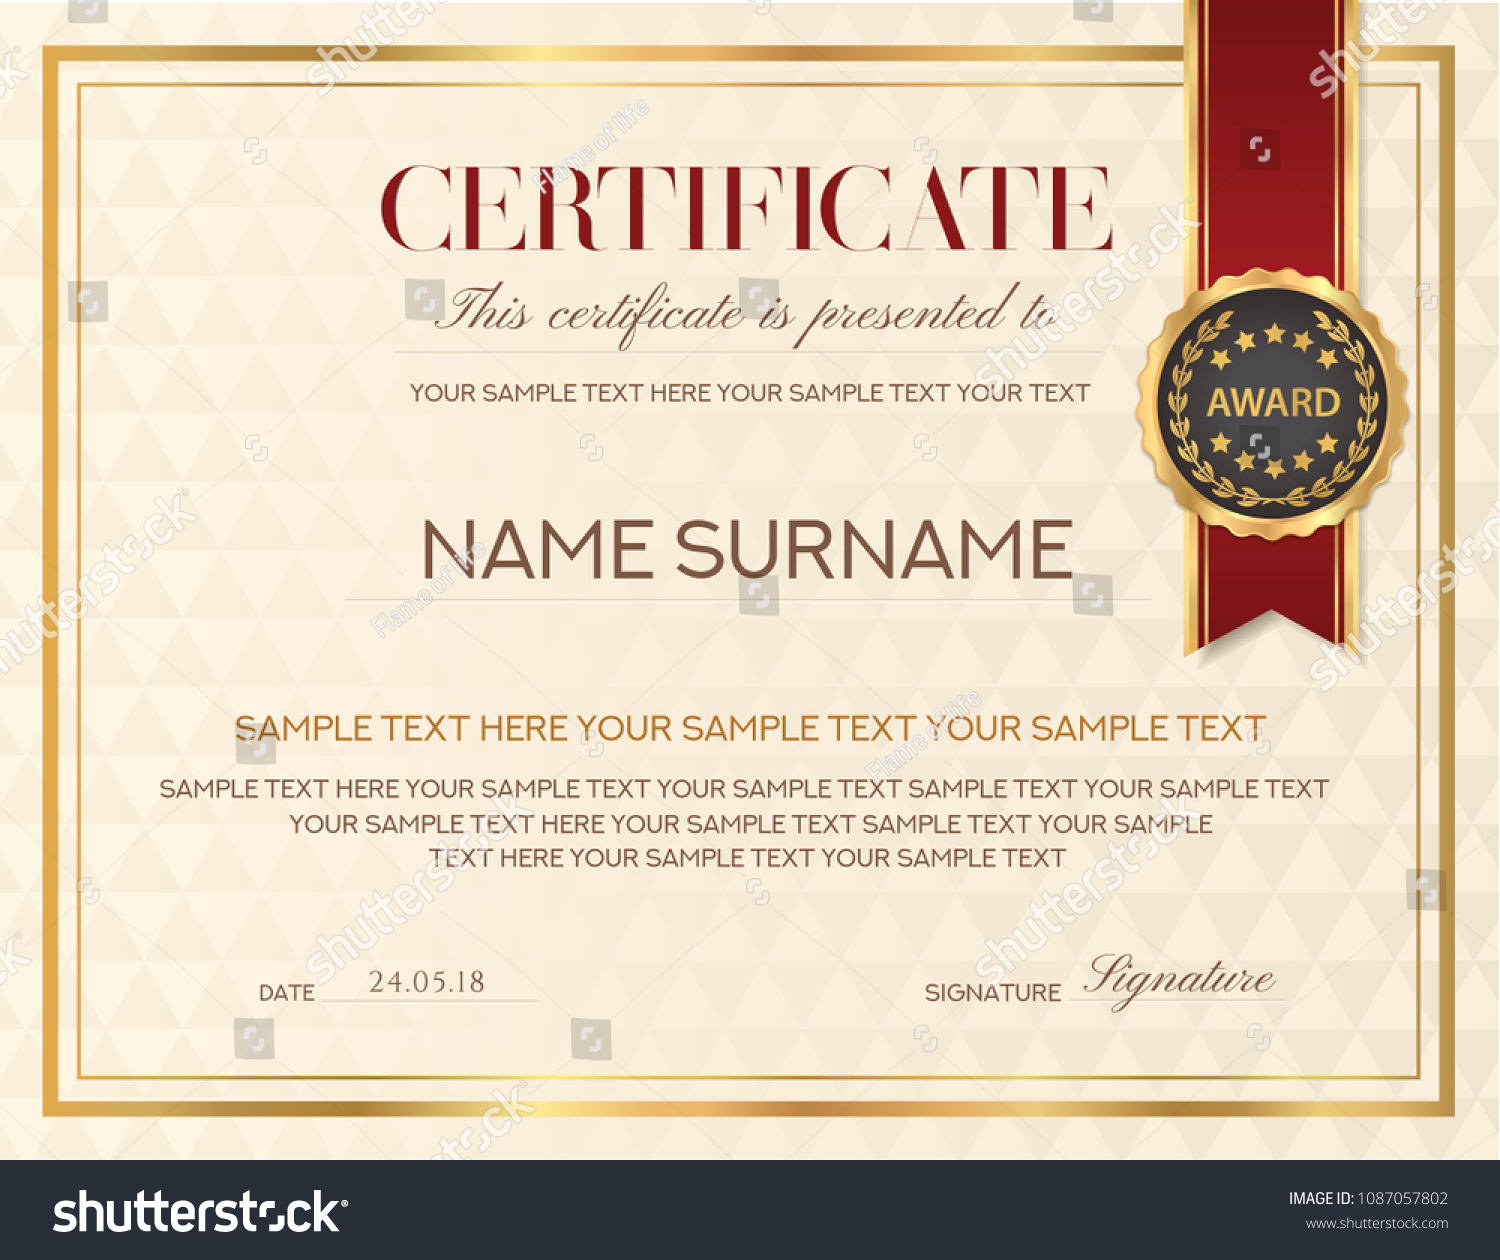 certificate template diploma design with emblem red ribbon certificate of appreciation certificate